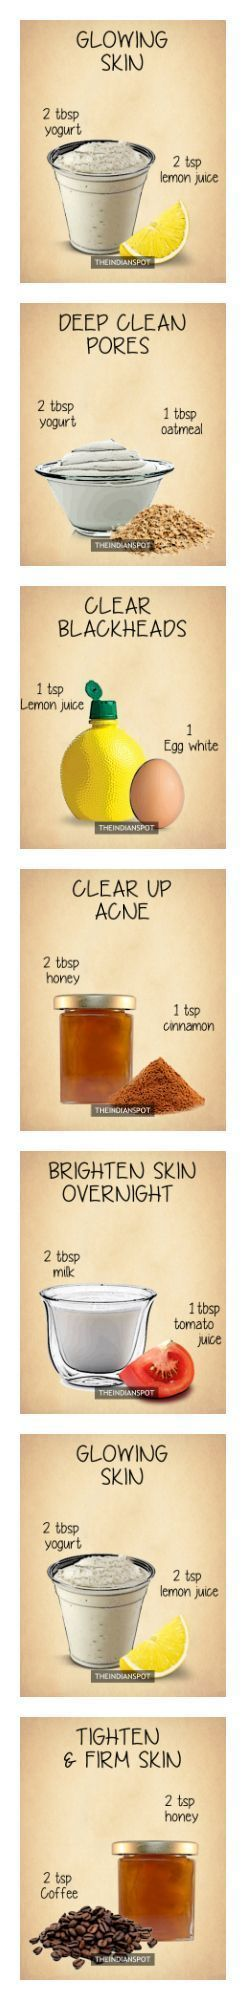 Face cleansing http://beautifulclearskin.net/category/clear-skin-tips/ #OrganicSkinCreamIdeas